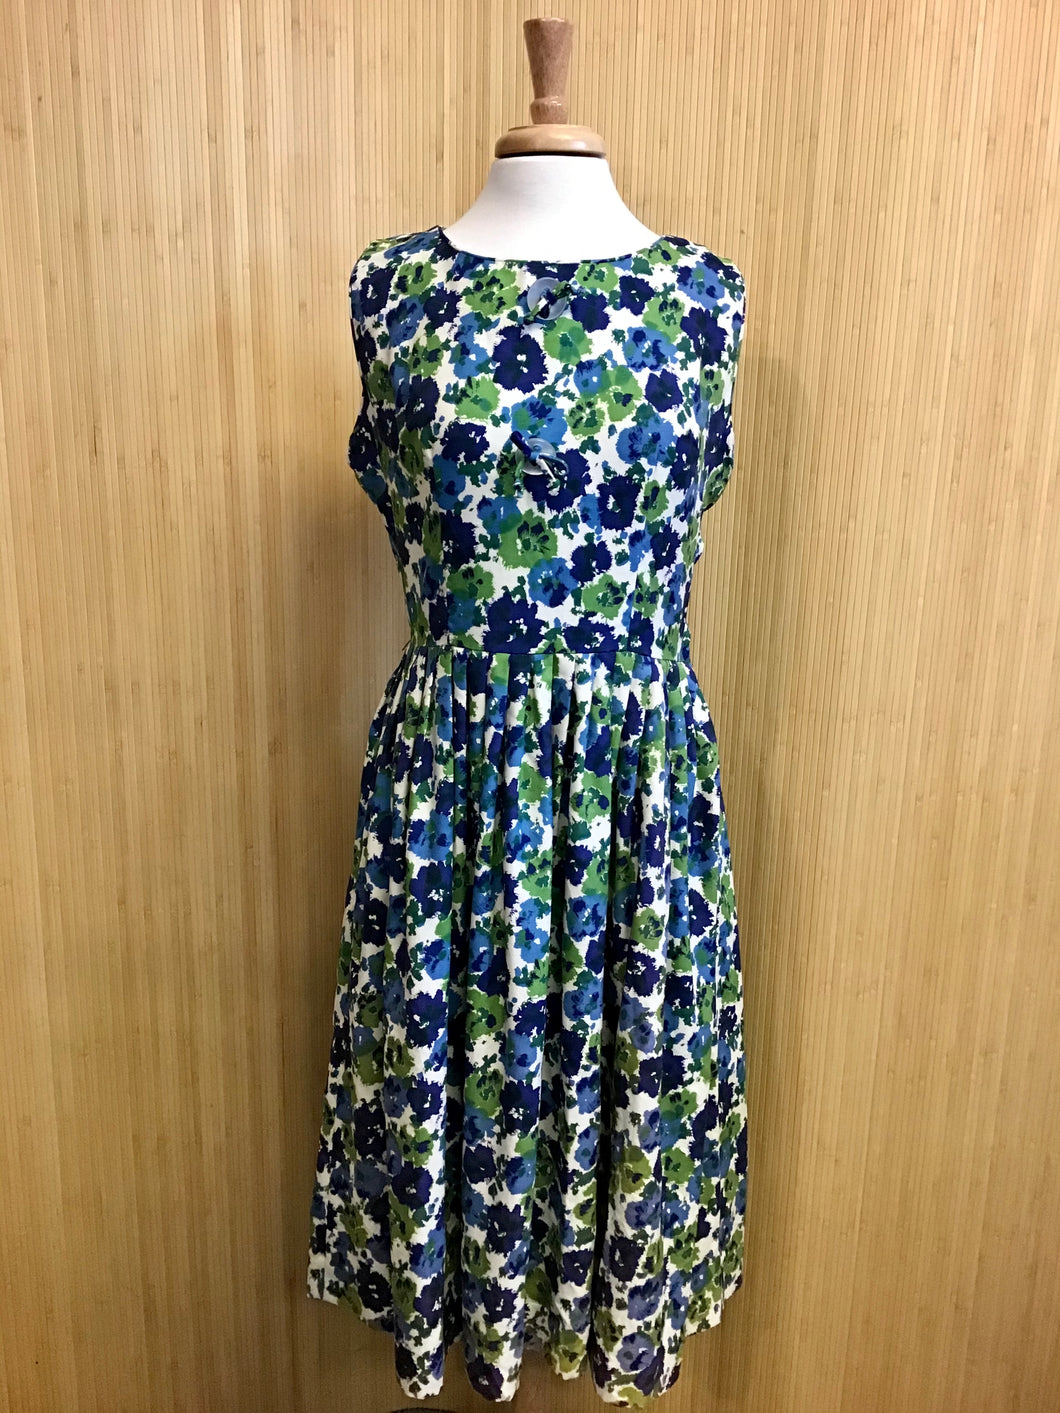 Fashioned by Sorority Midi Dress (M)